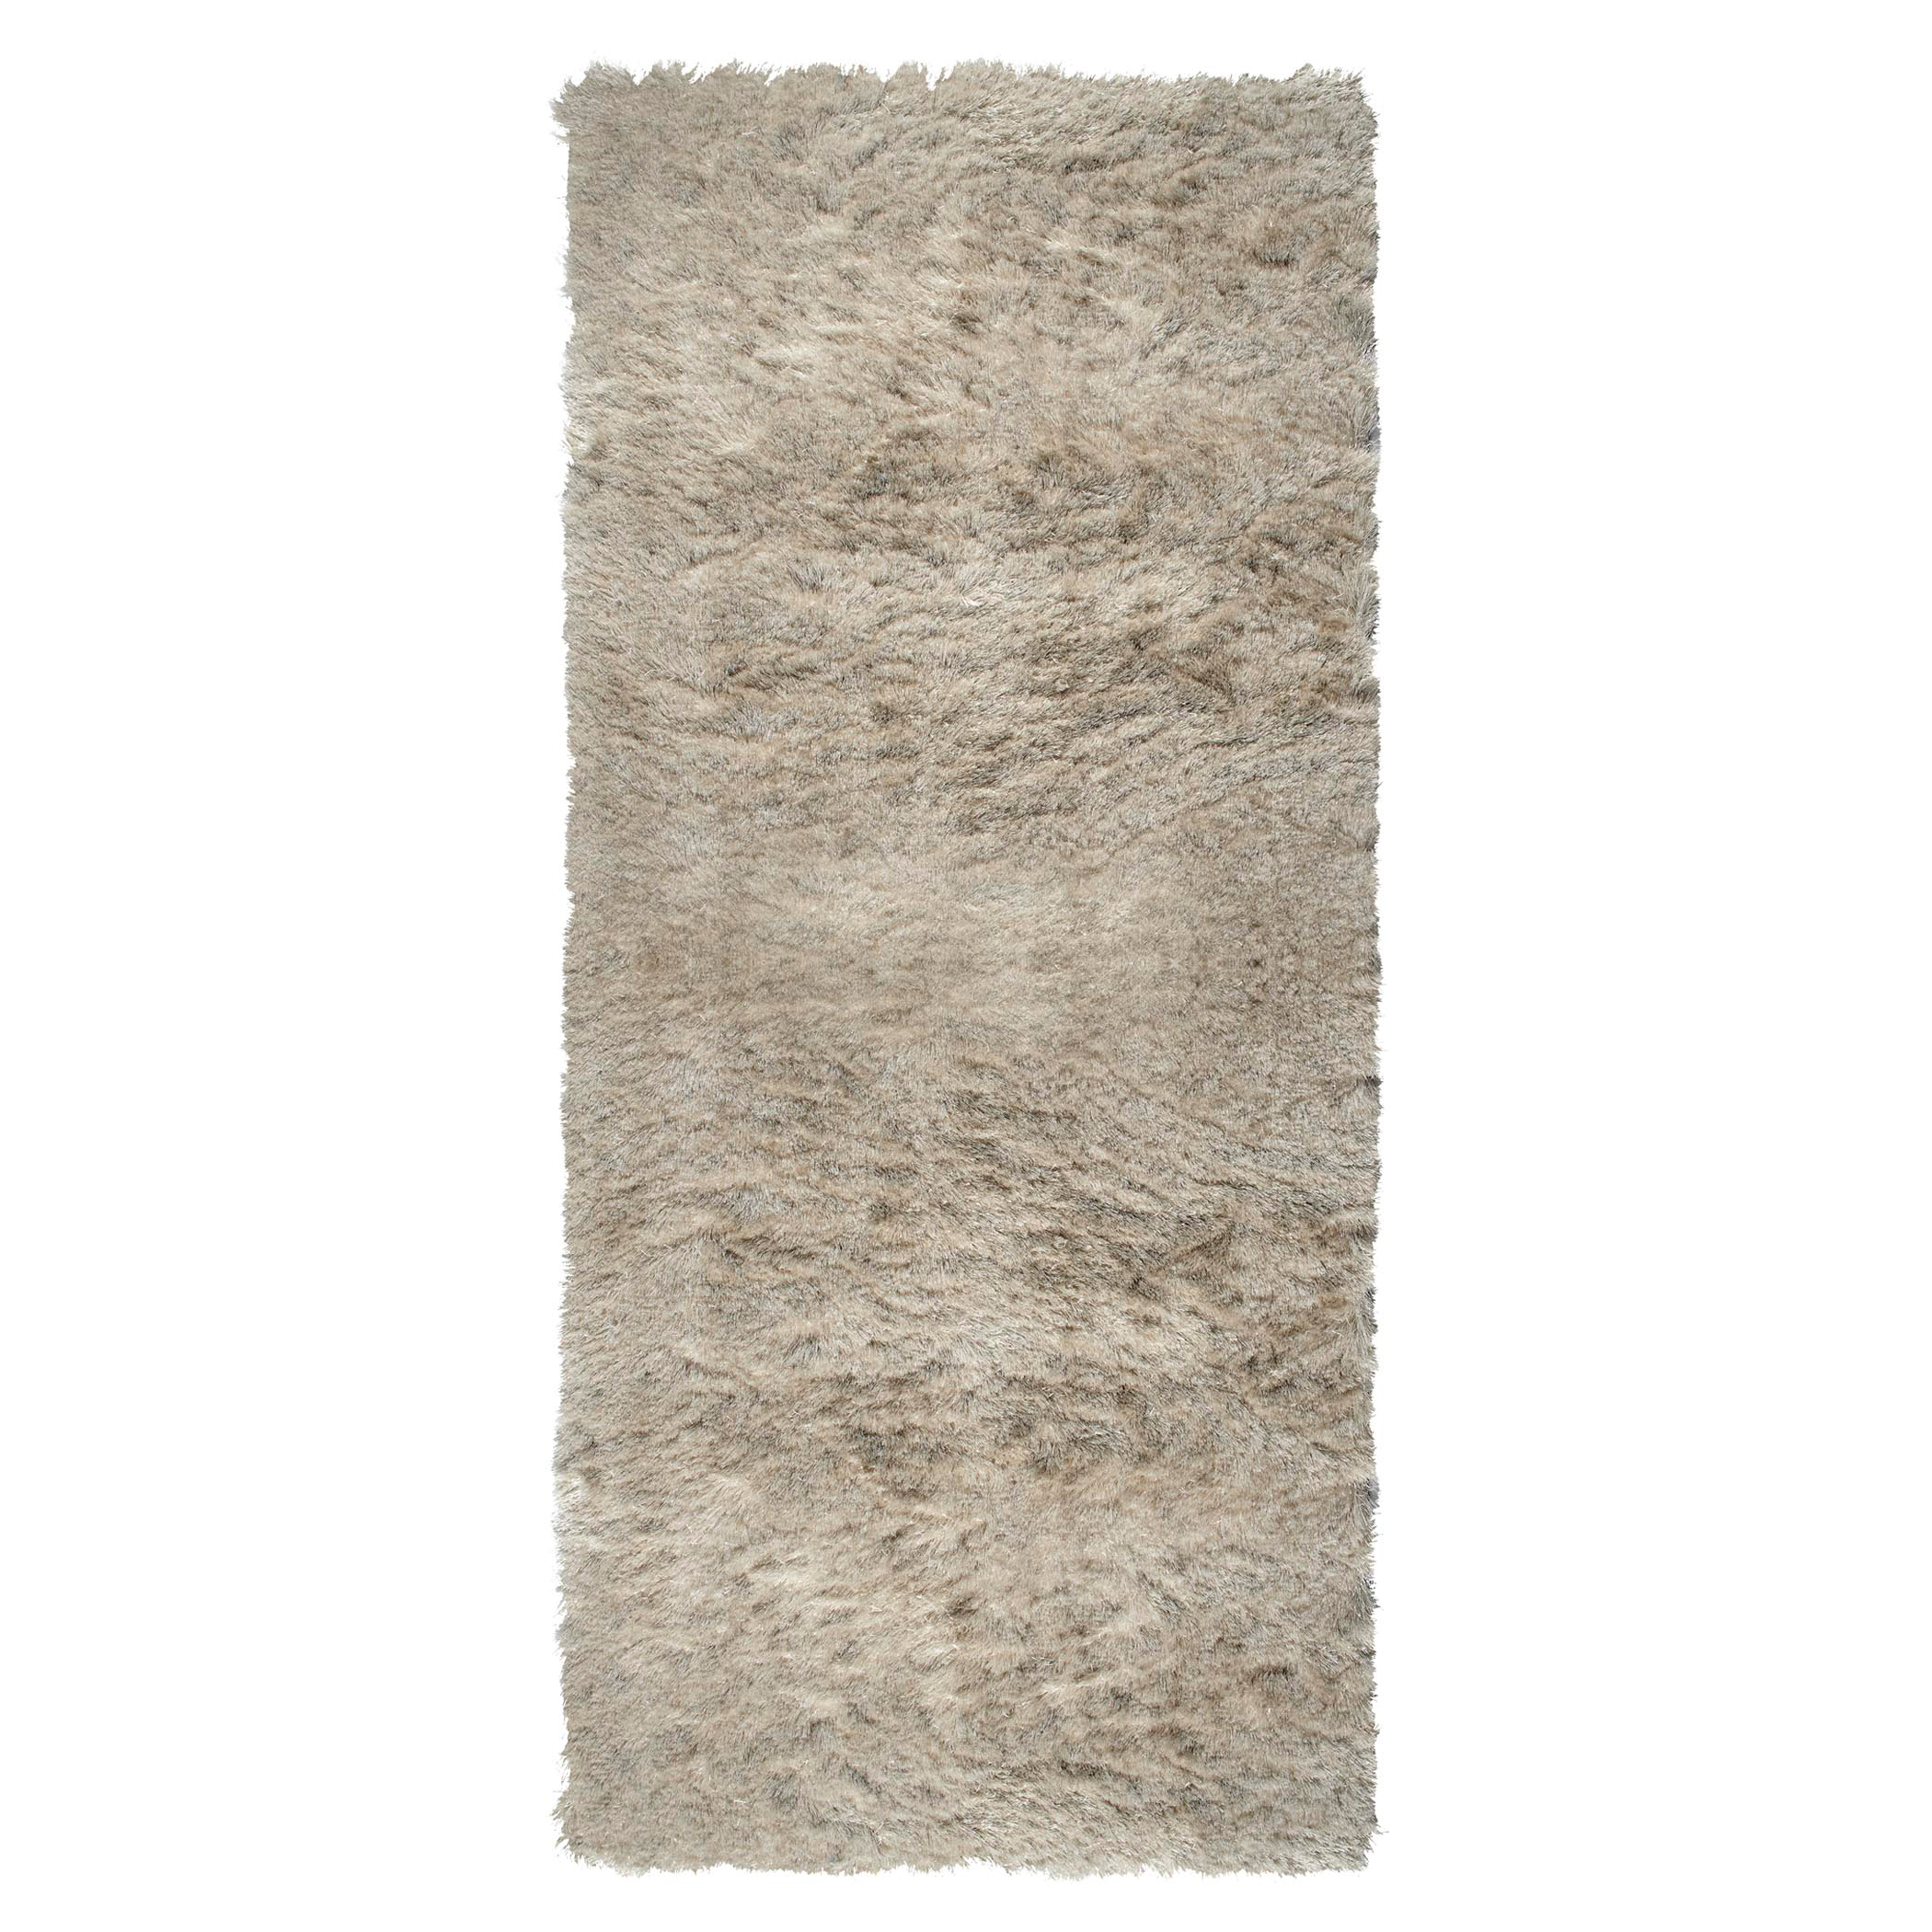 Indochine Rug - Sand